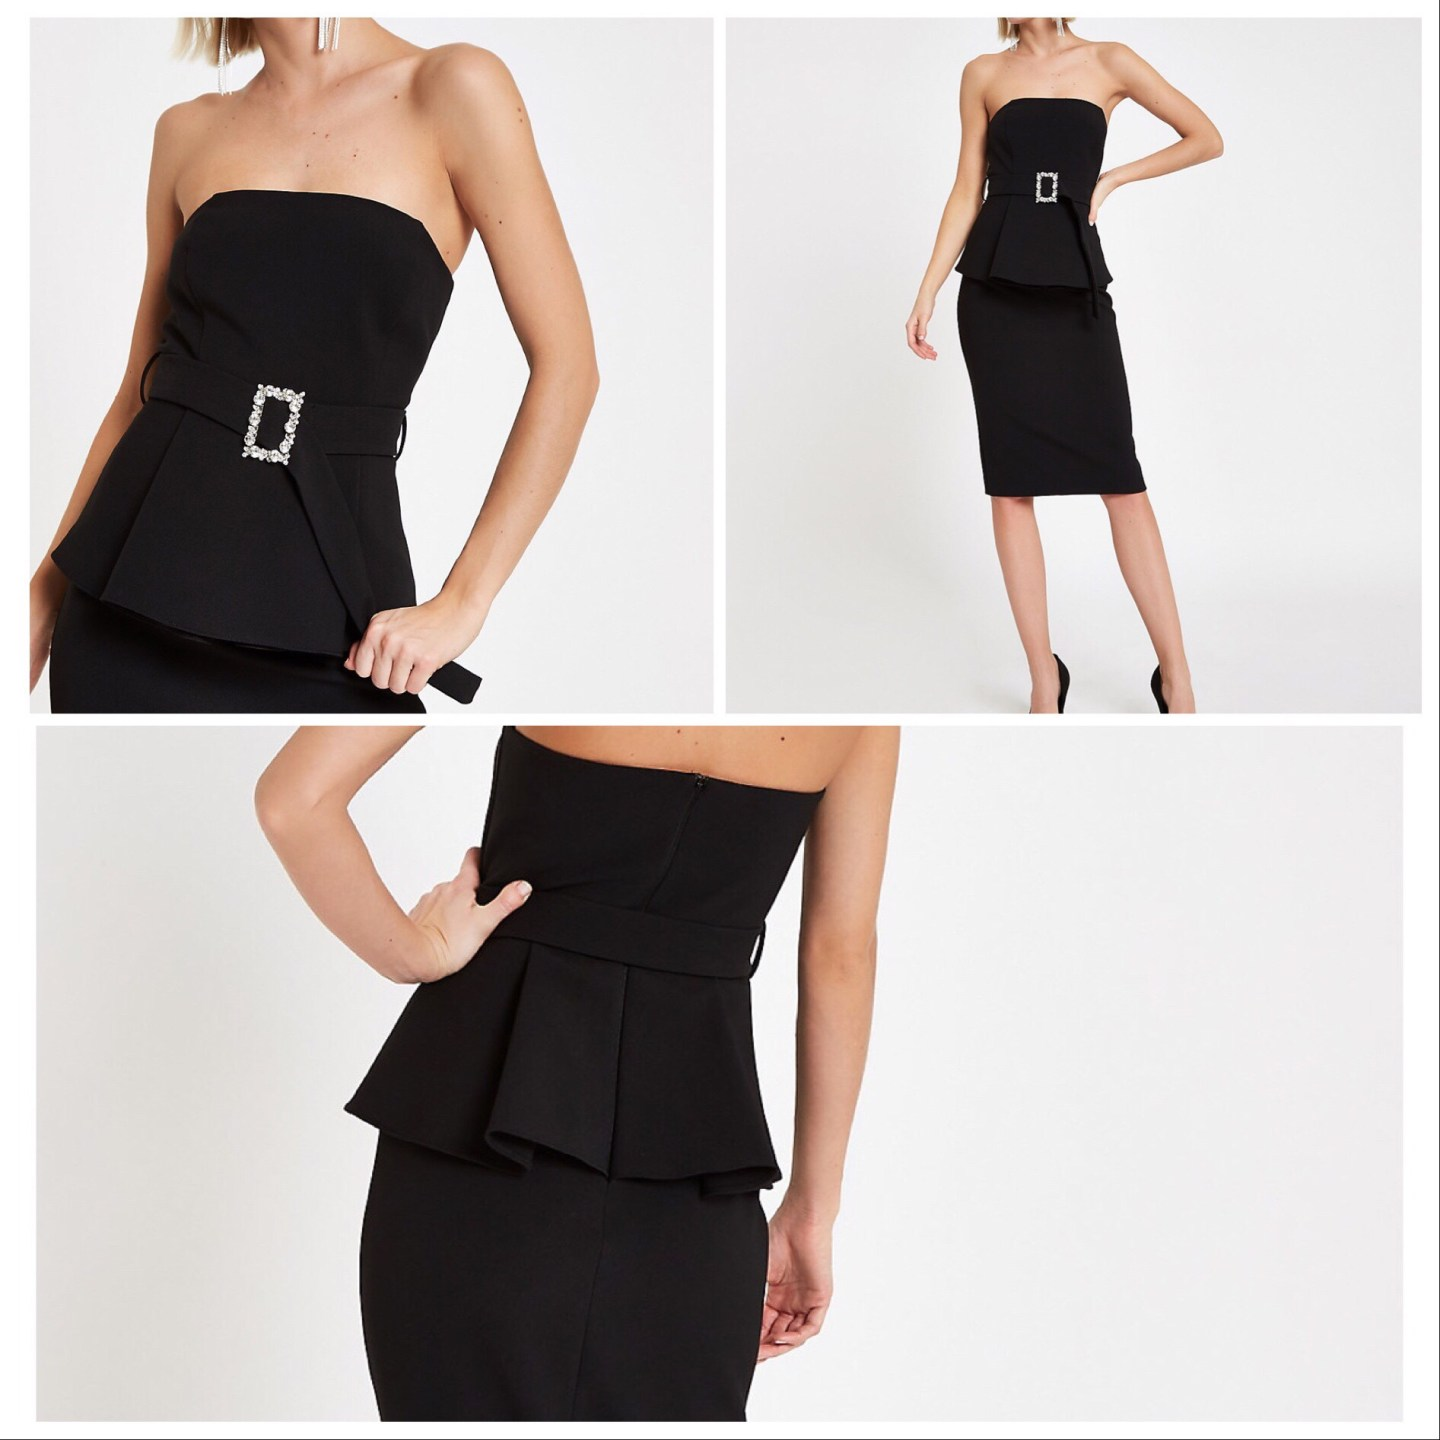 Perfect new year dress at fabulous prices from great brands online and high street